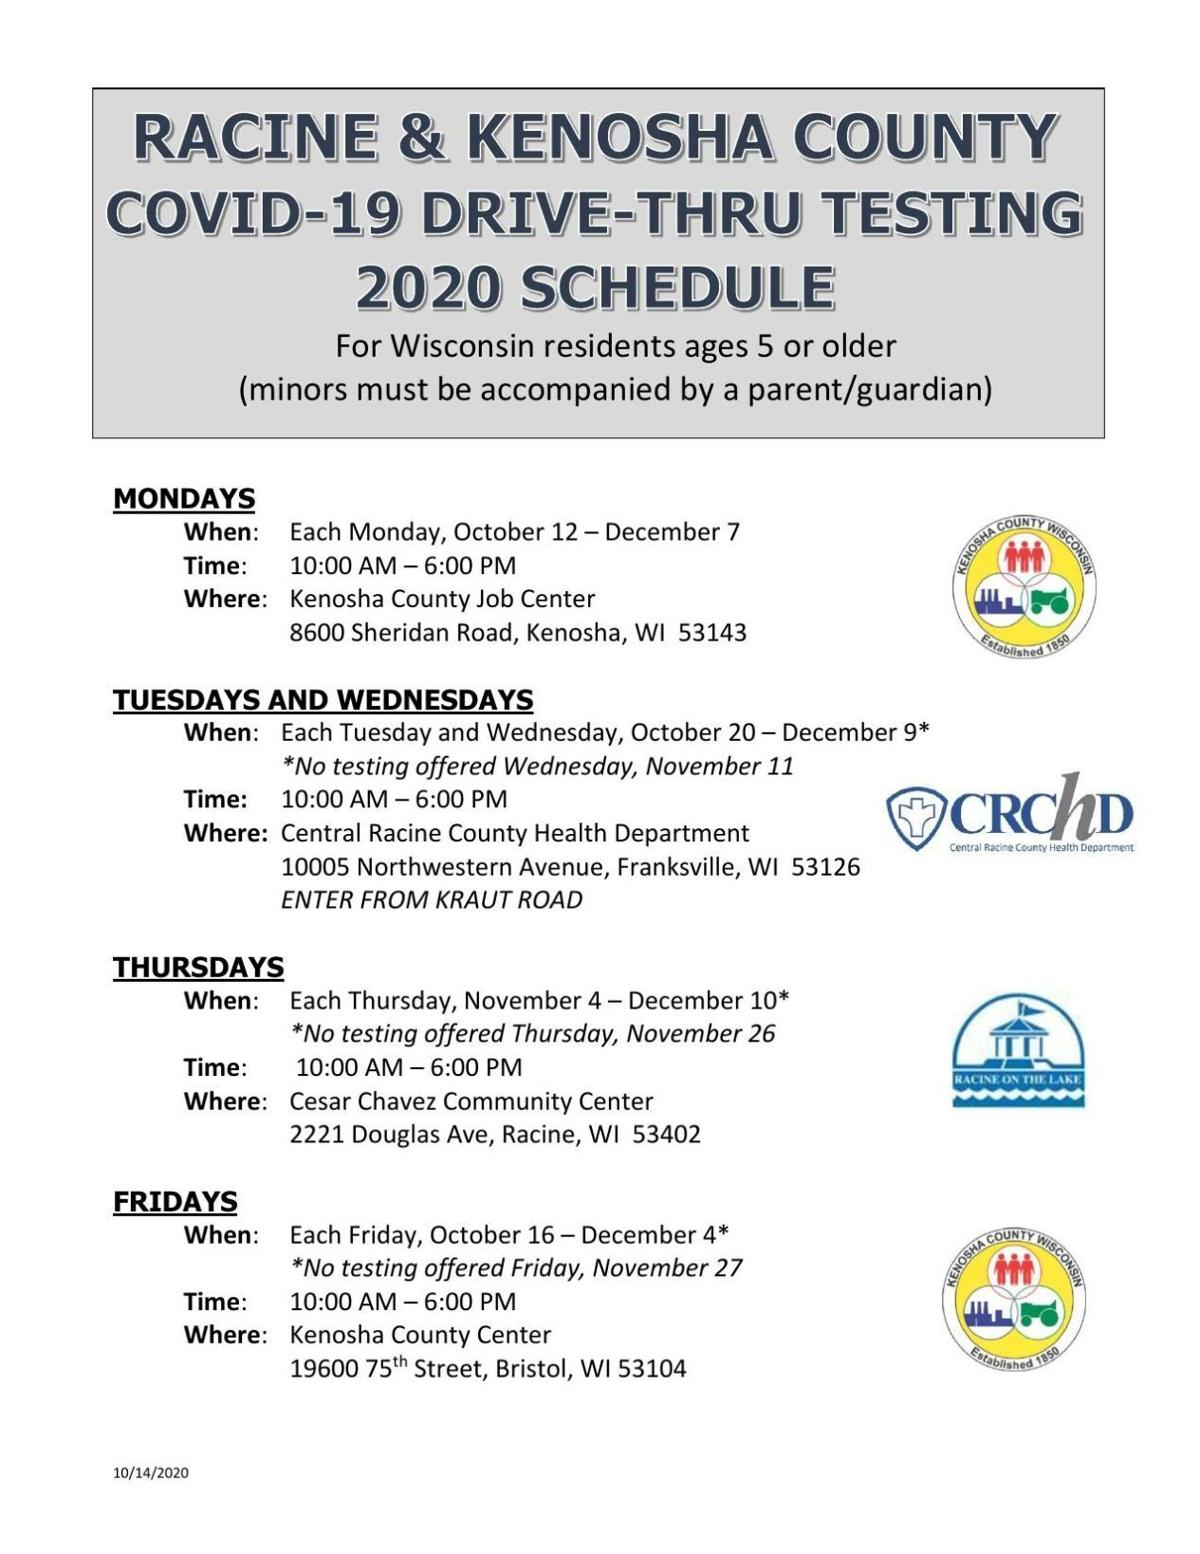 CLICK HERE to check out the bilingual Racine County/Kenosha County COVID-19 drive-thru testing schedule through Dec. 10